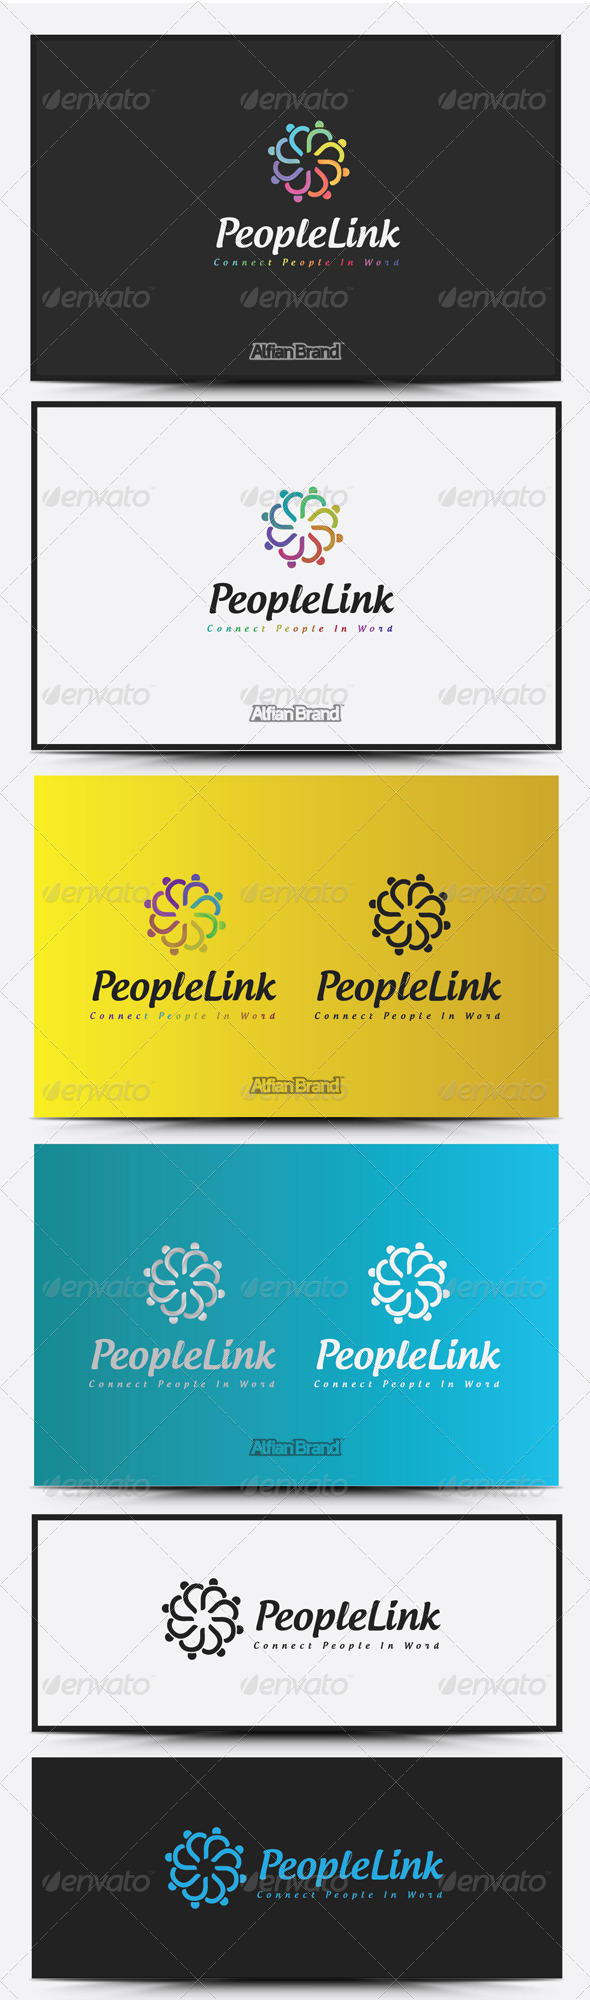 GraphicRiver People Link logo 8516808